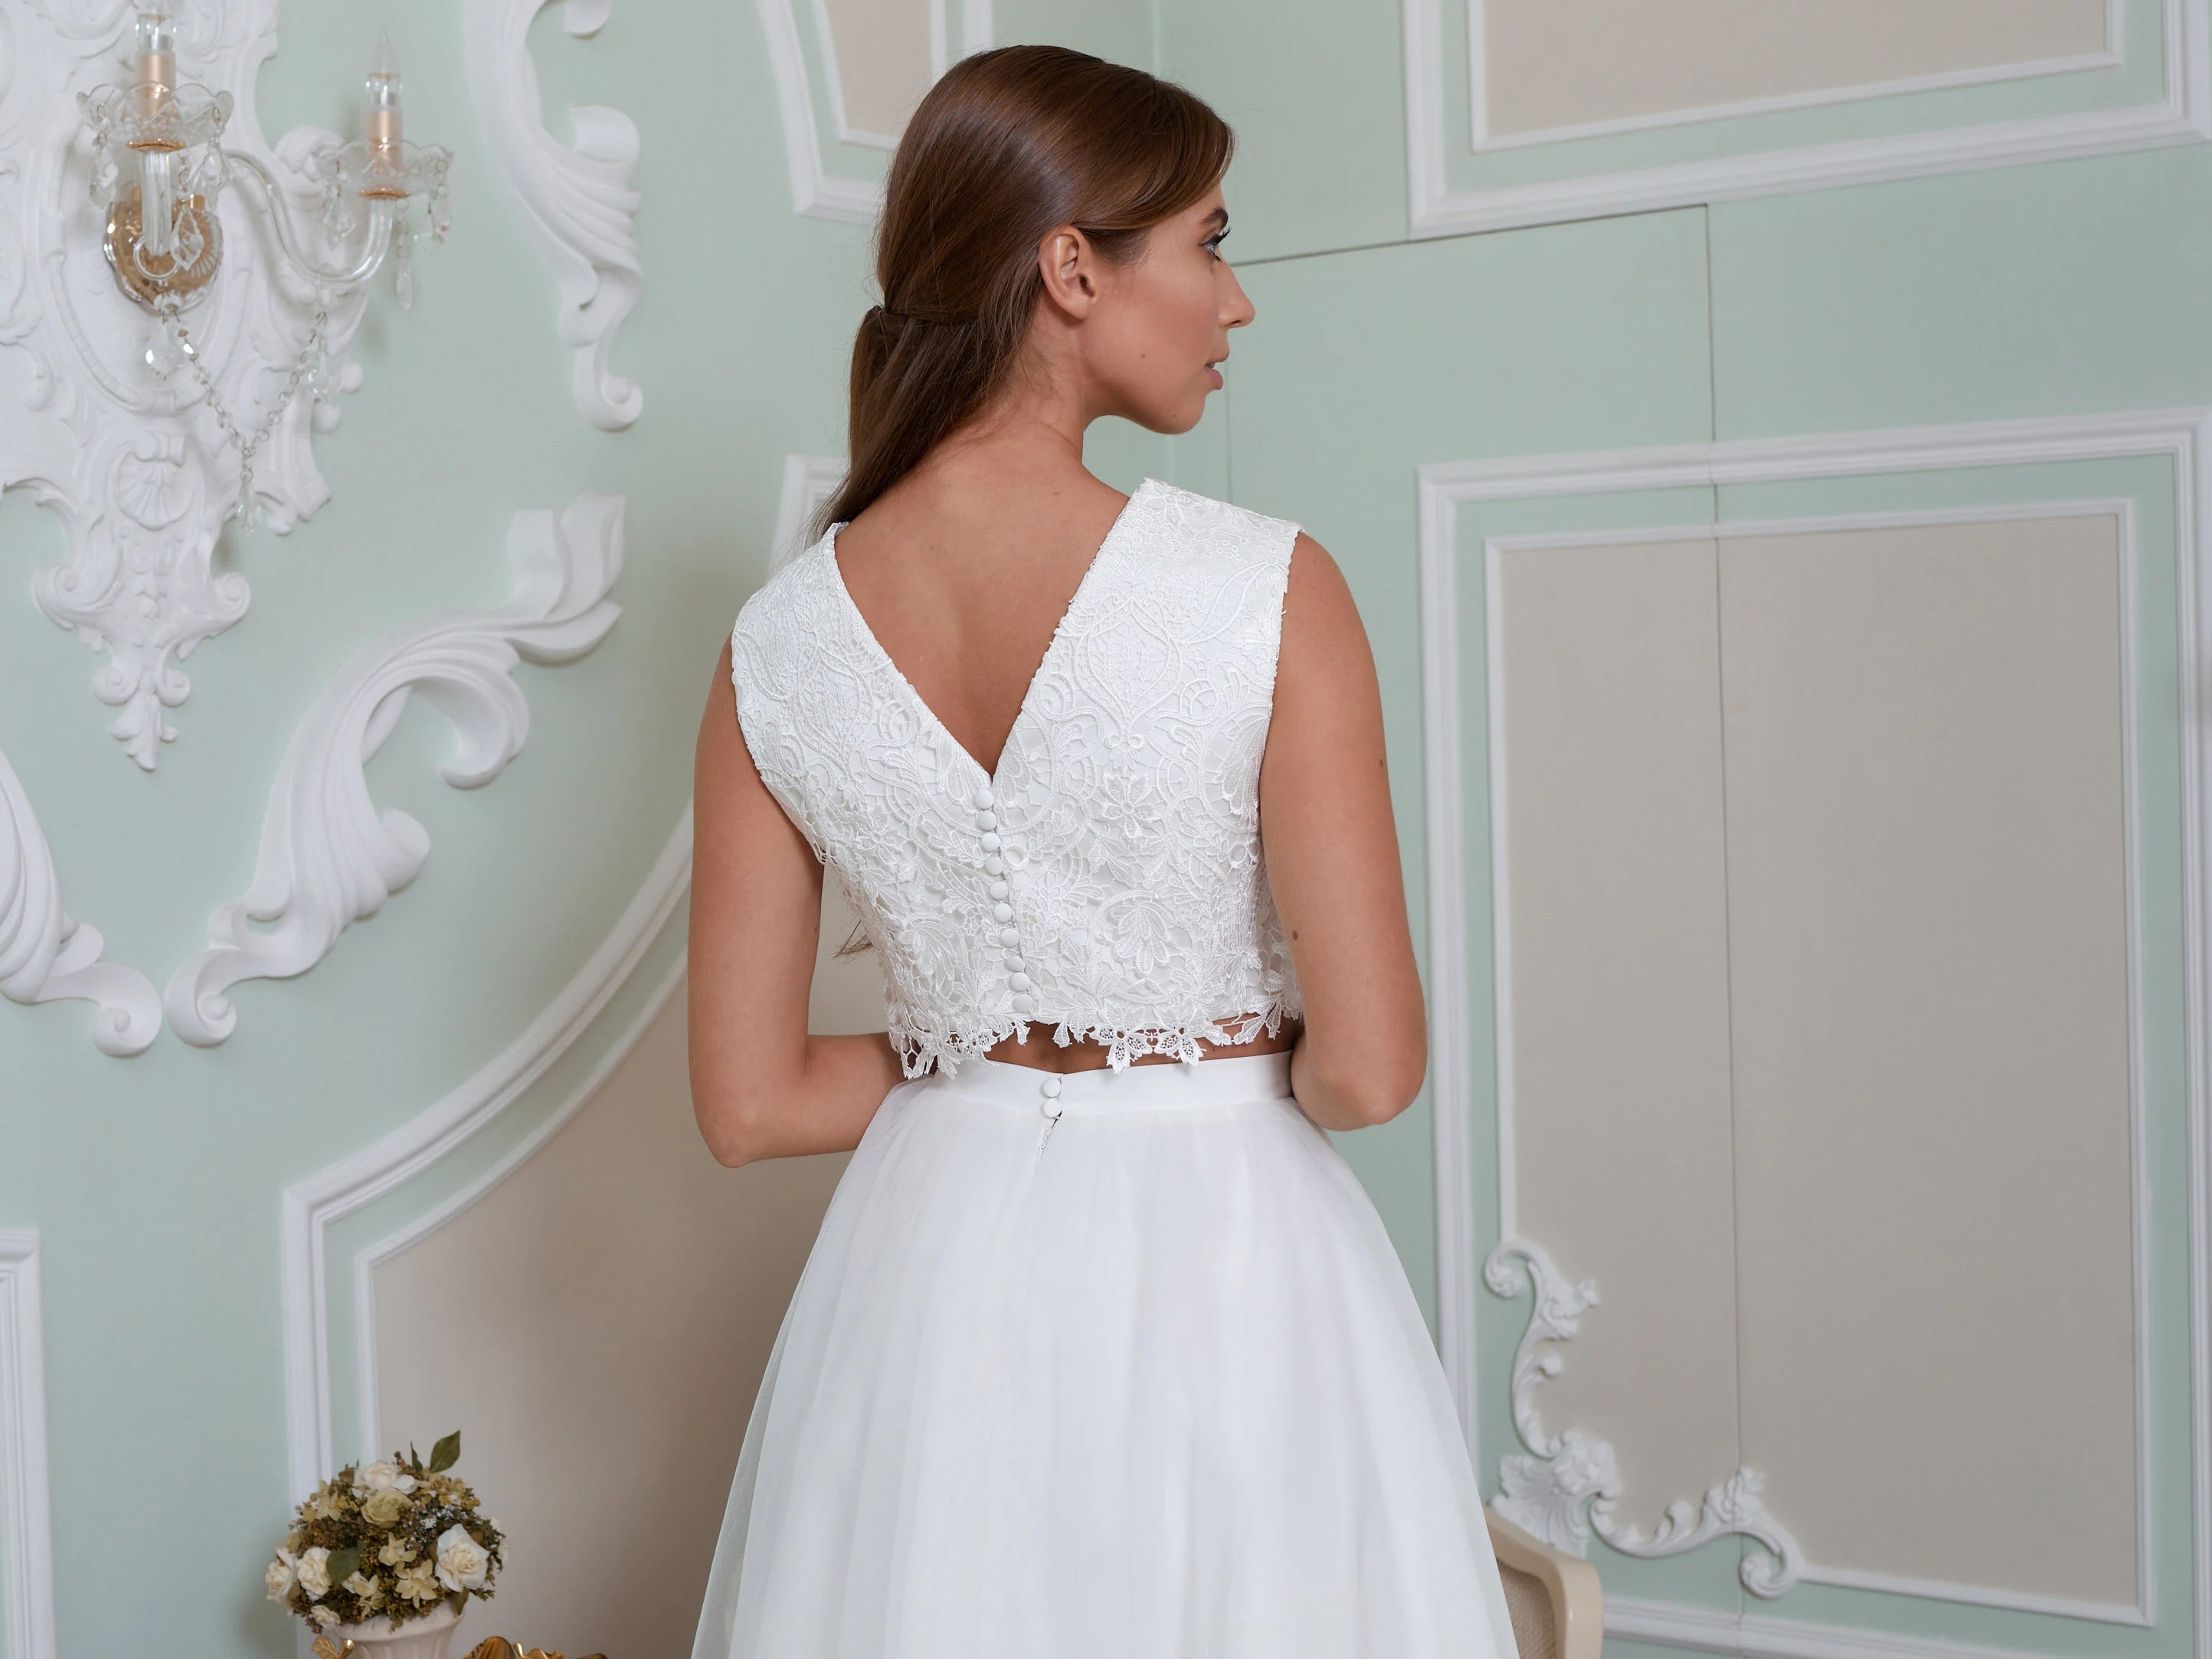 Ivory Bridal Gown Two Piece Wedding Dress Bridal Separates